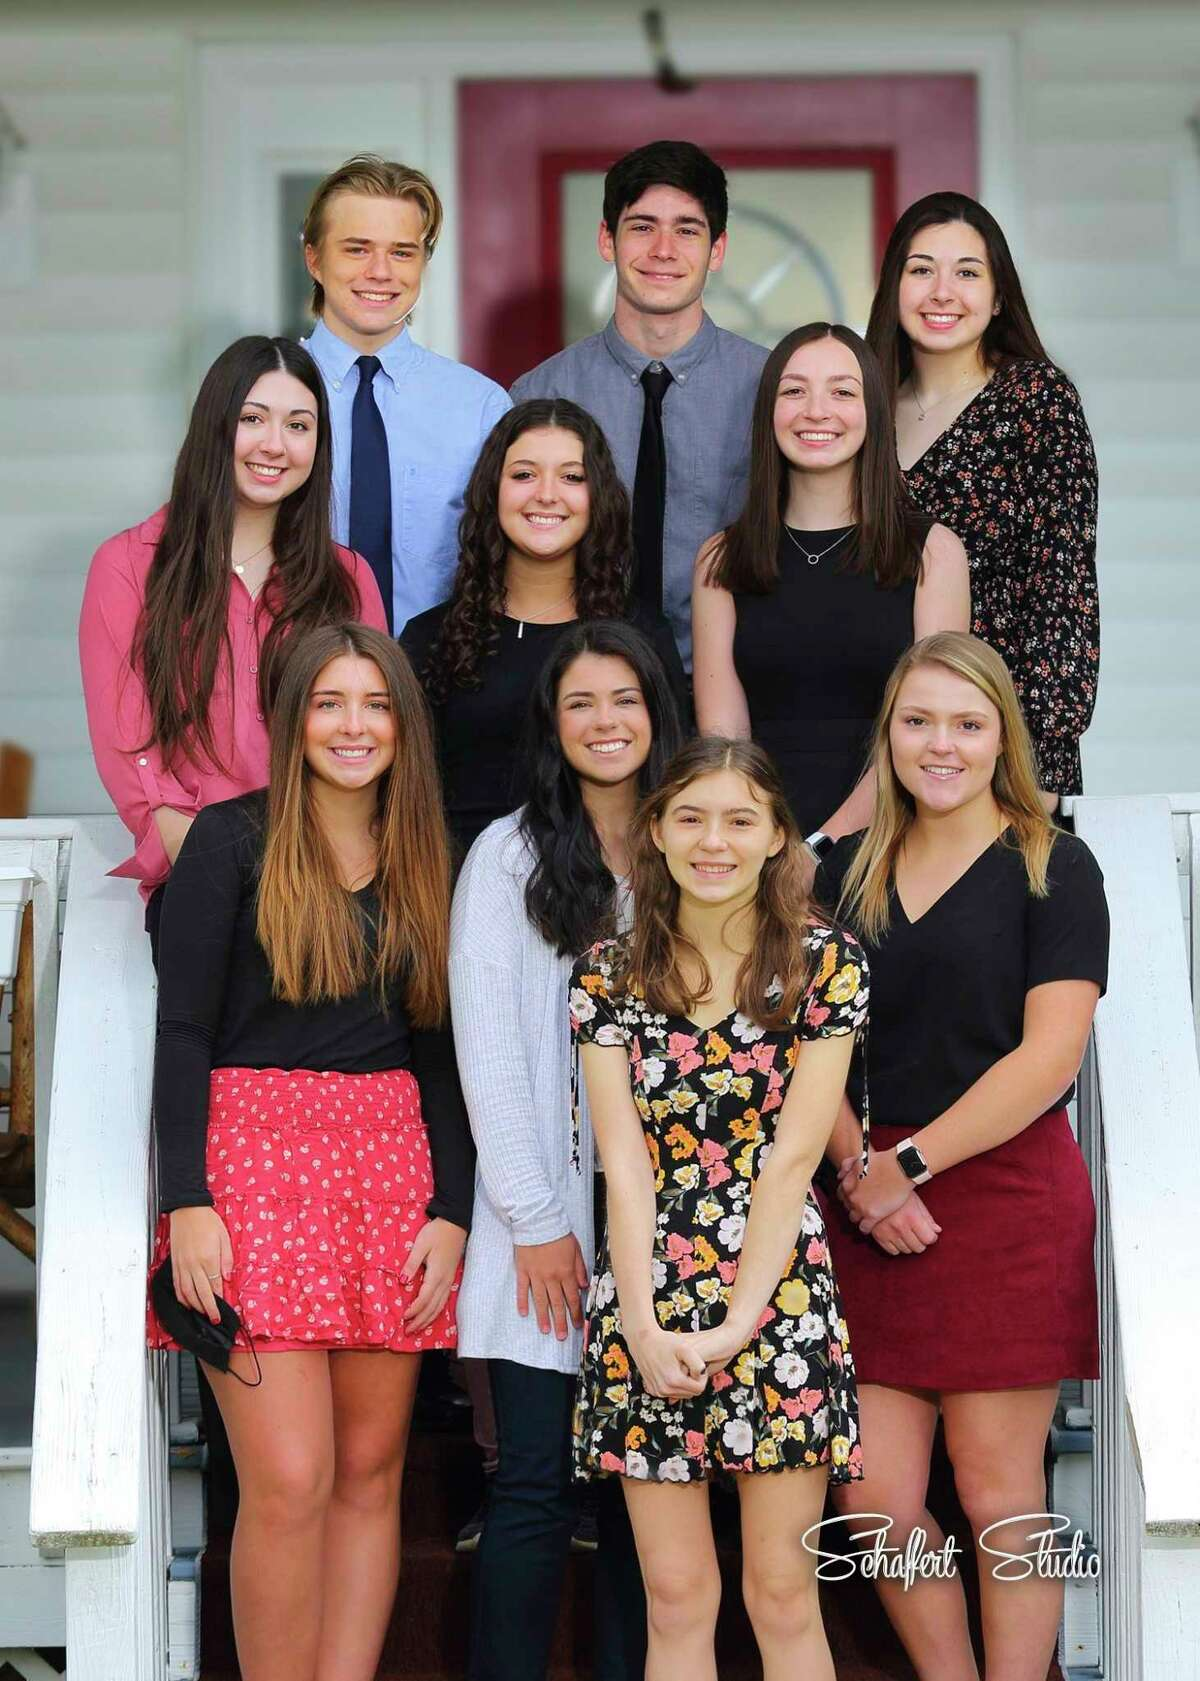 Pictured is the Meridian Early College High School's Kiwanis Top 10 percent. Students include, back row, Jack Murphy, Jackson Eggerd, and Madelyn Ankoviak; second row, Cambrya Ankoviak, Alexandra Dodman, and Morgan Glann; first row, Alyssa Swanton, Jenna Holzinger, Ashley Chase, and Allison Sutton. (Photo Provided)